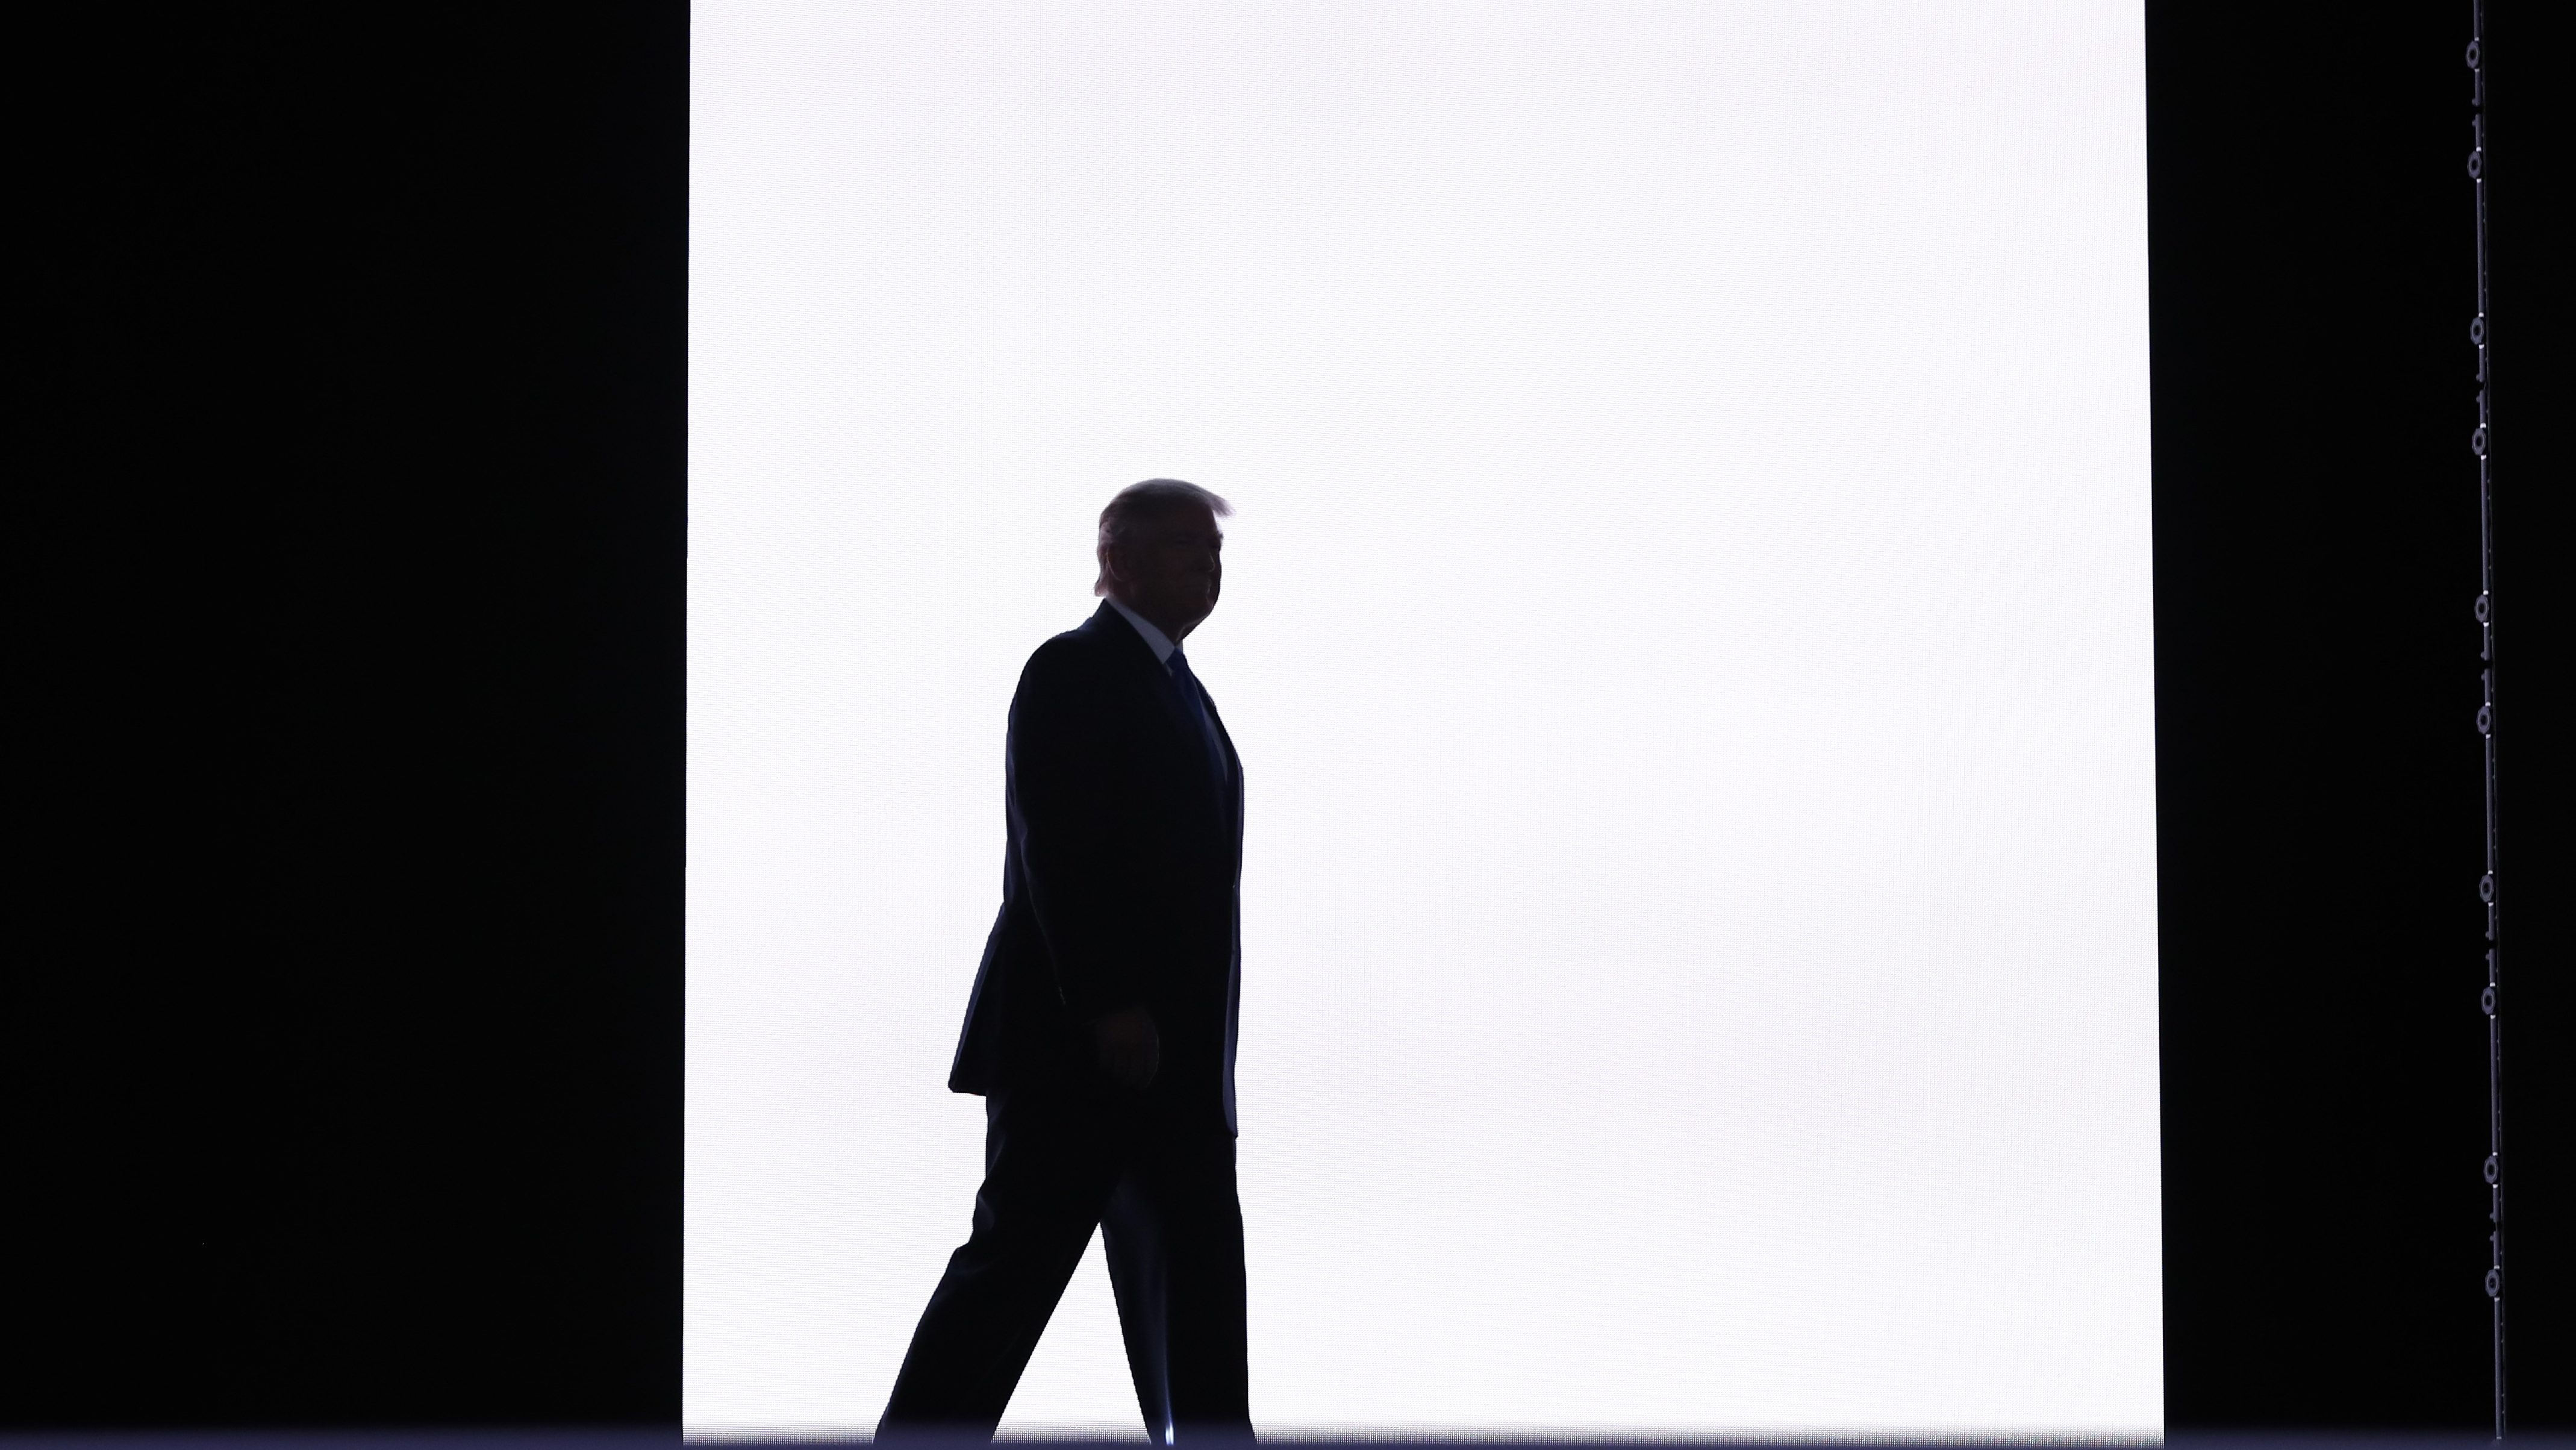 Republican U.S. presidential candidate Donald Trump appears onstage to introduce his wife Melania at the Republican National Convention in Cleveland, Ohio, U.S. July 18, 2016.  REUTERS/Mark Kauzlarich - RTSIMCQ